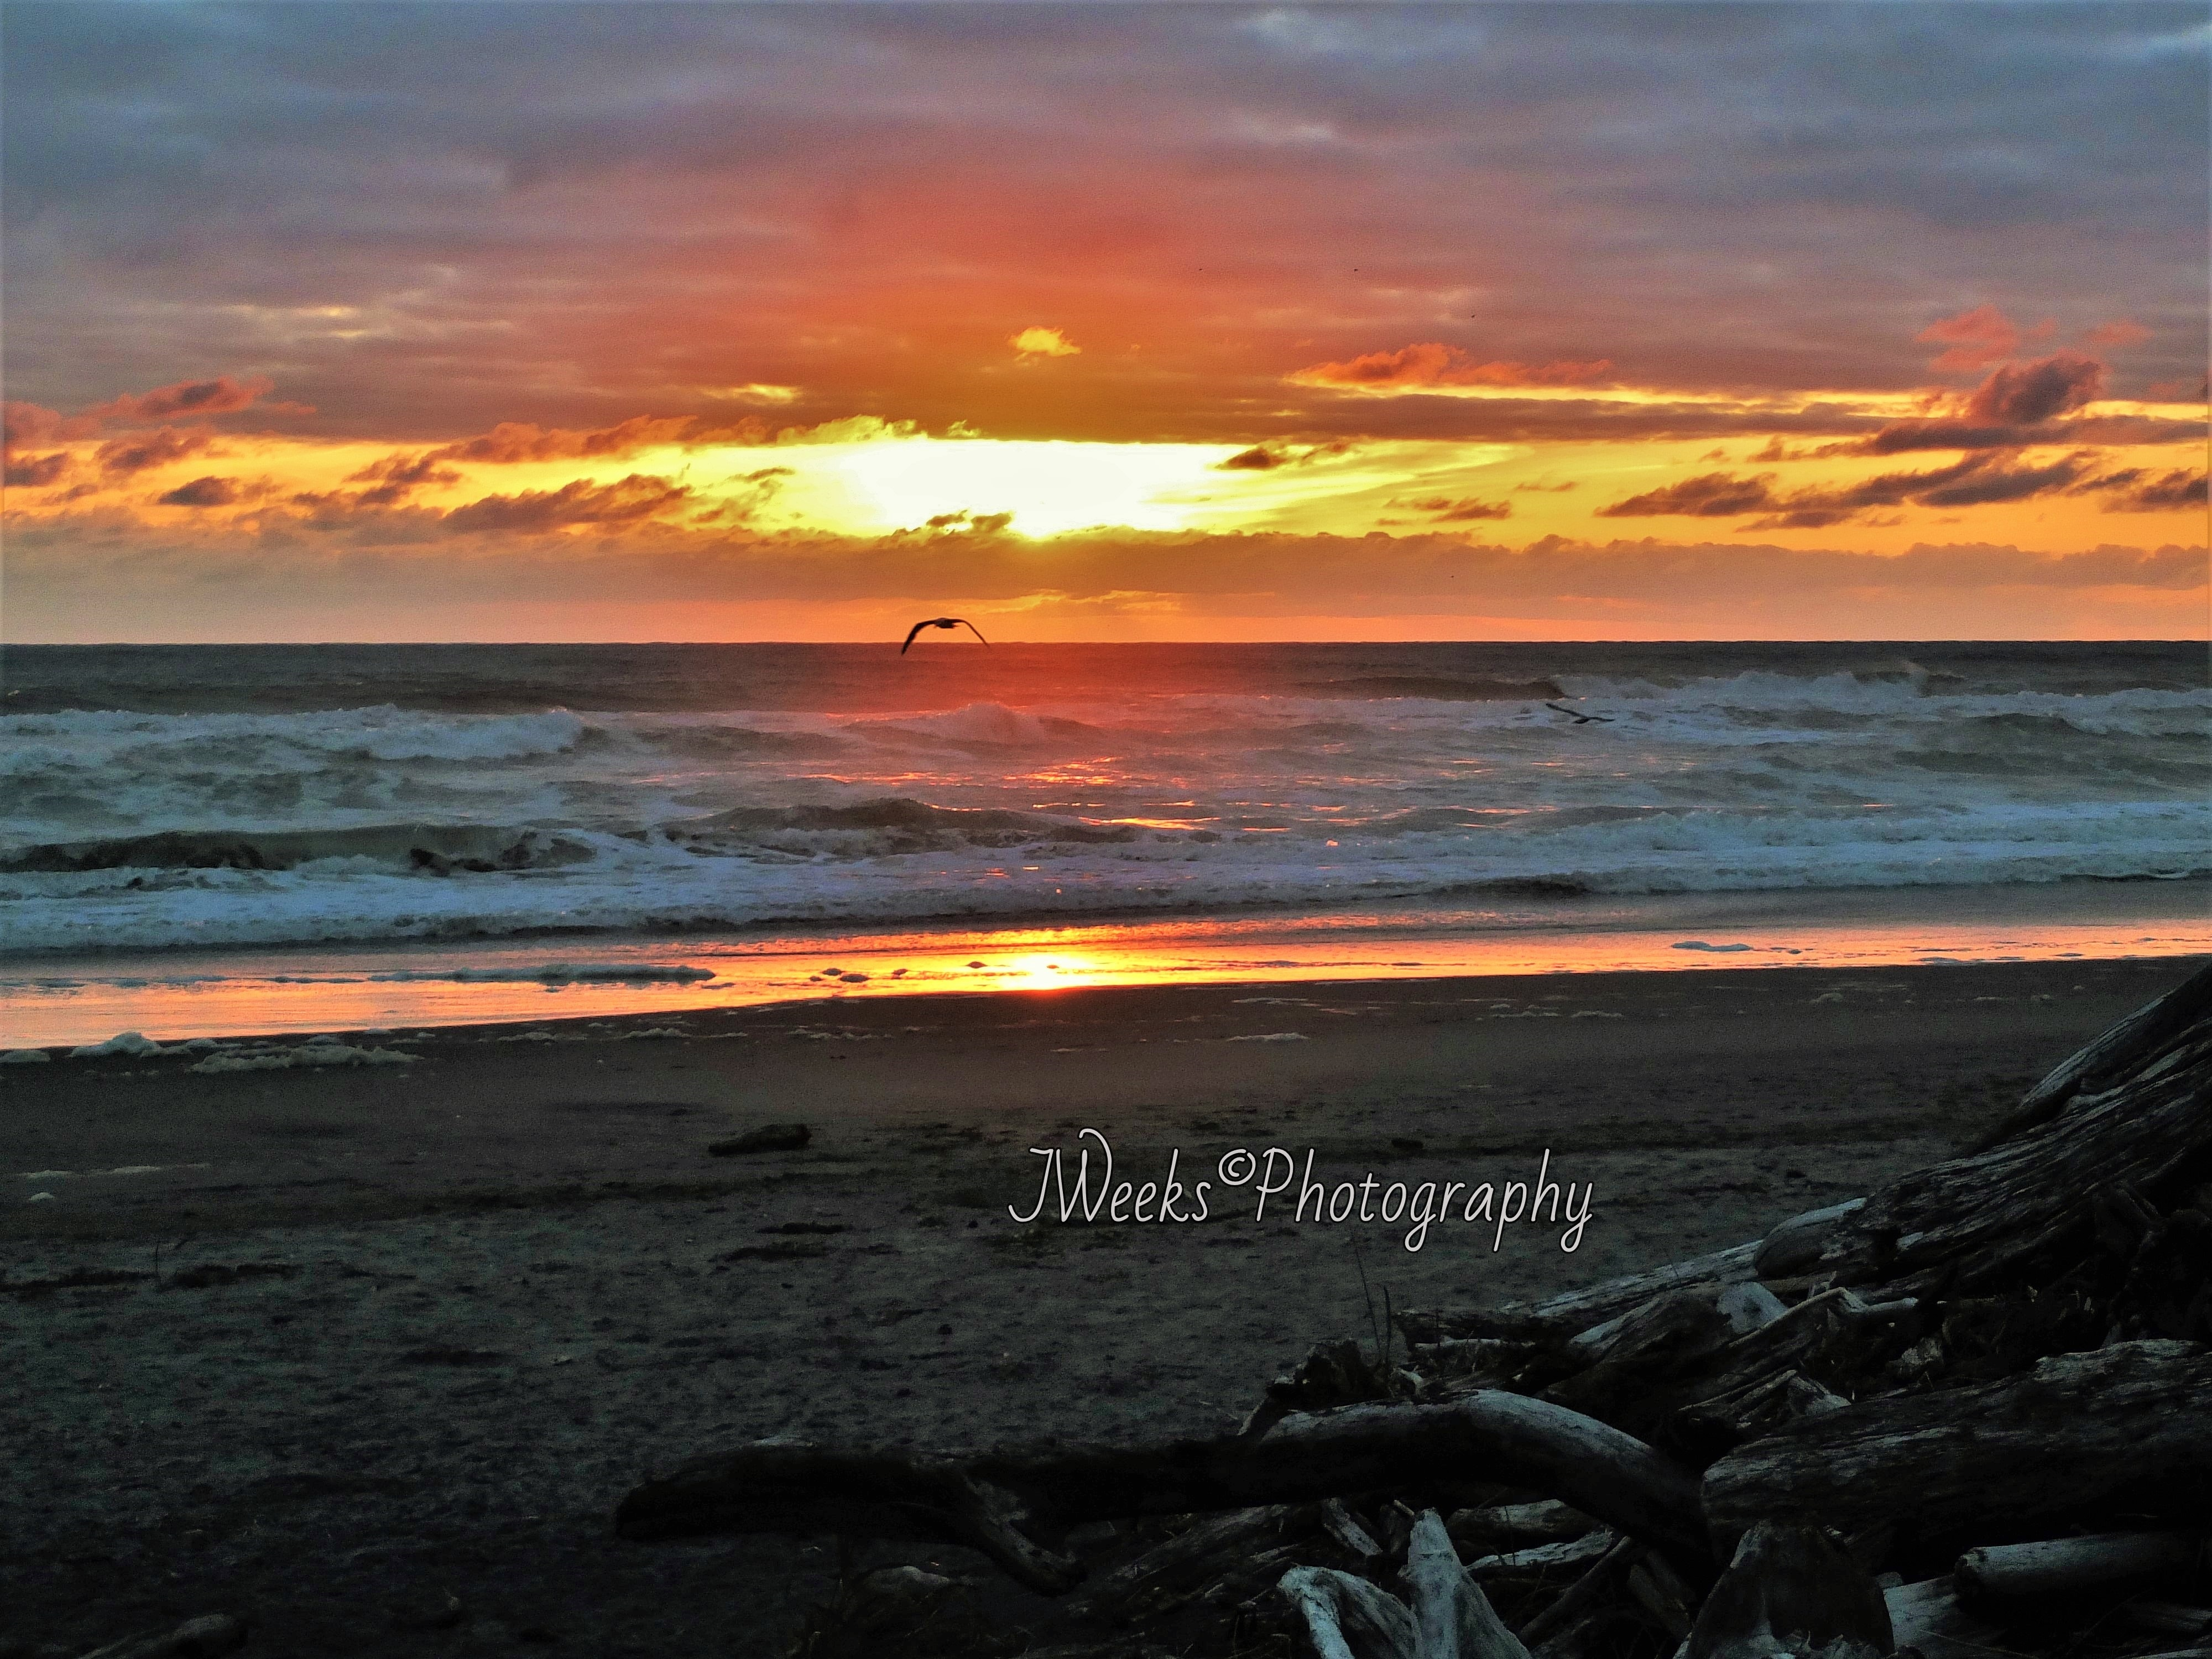 Cape Disappointment State Park (formerly Fort Canby)